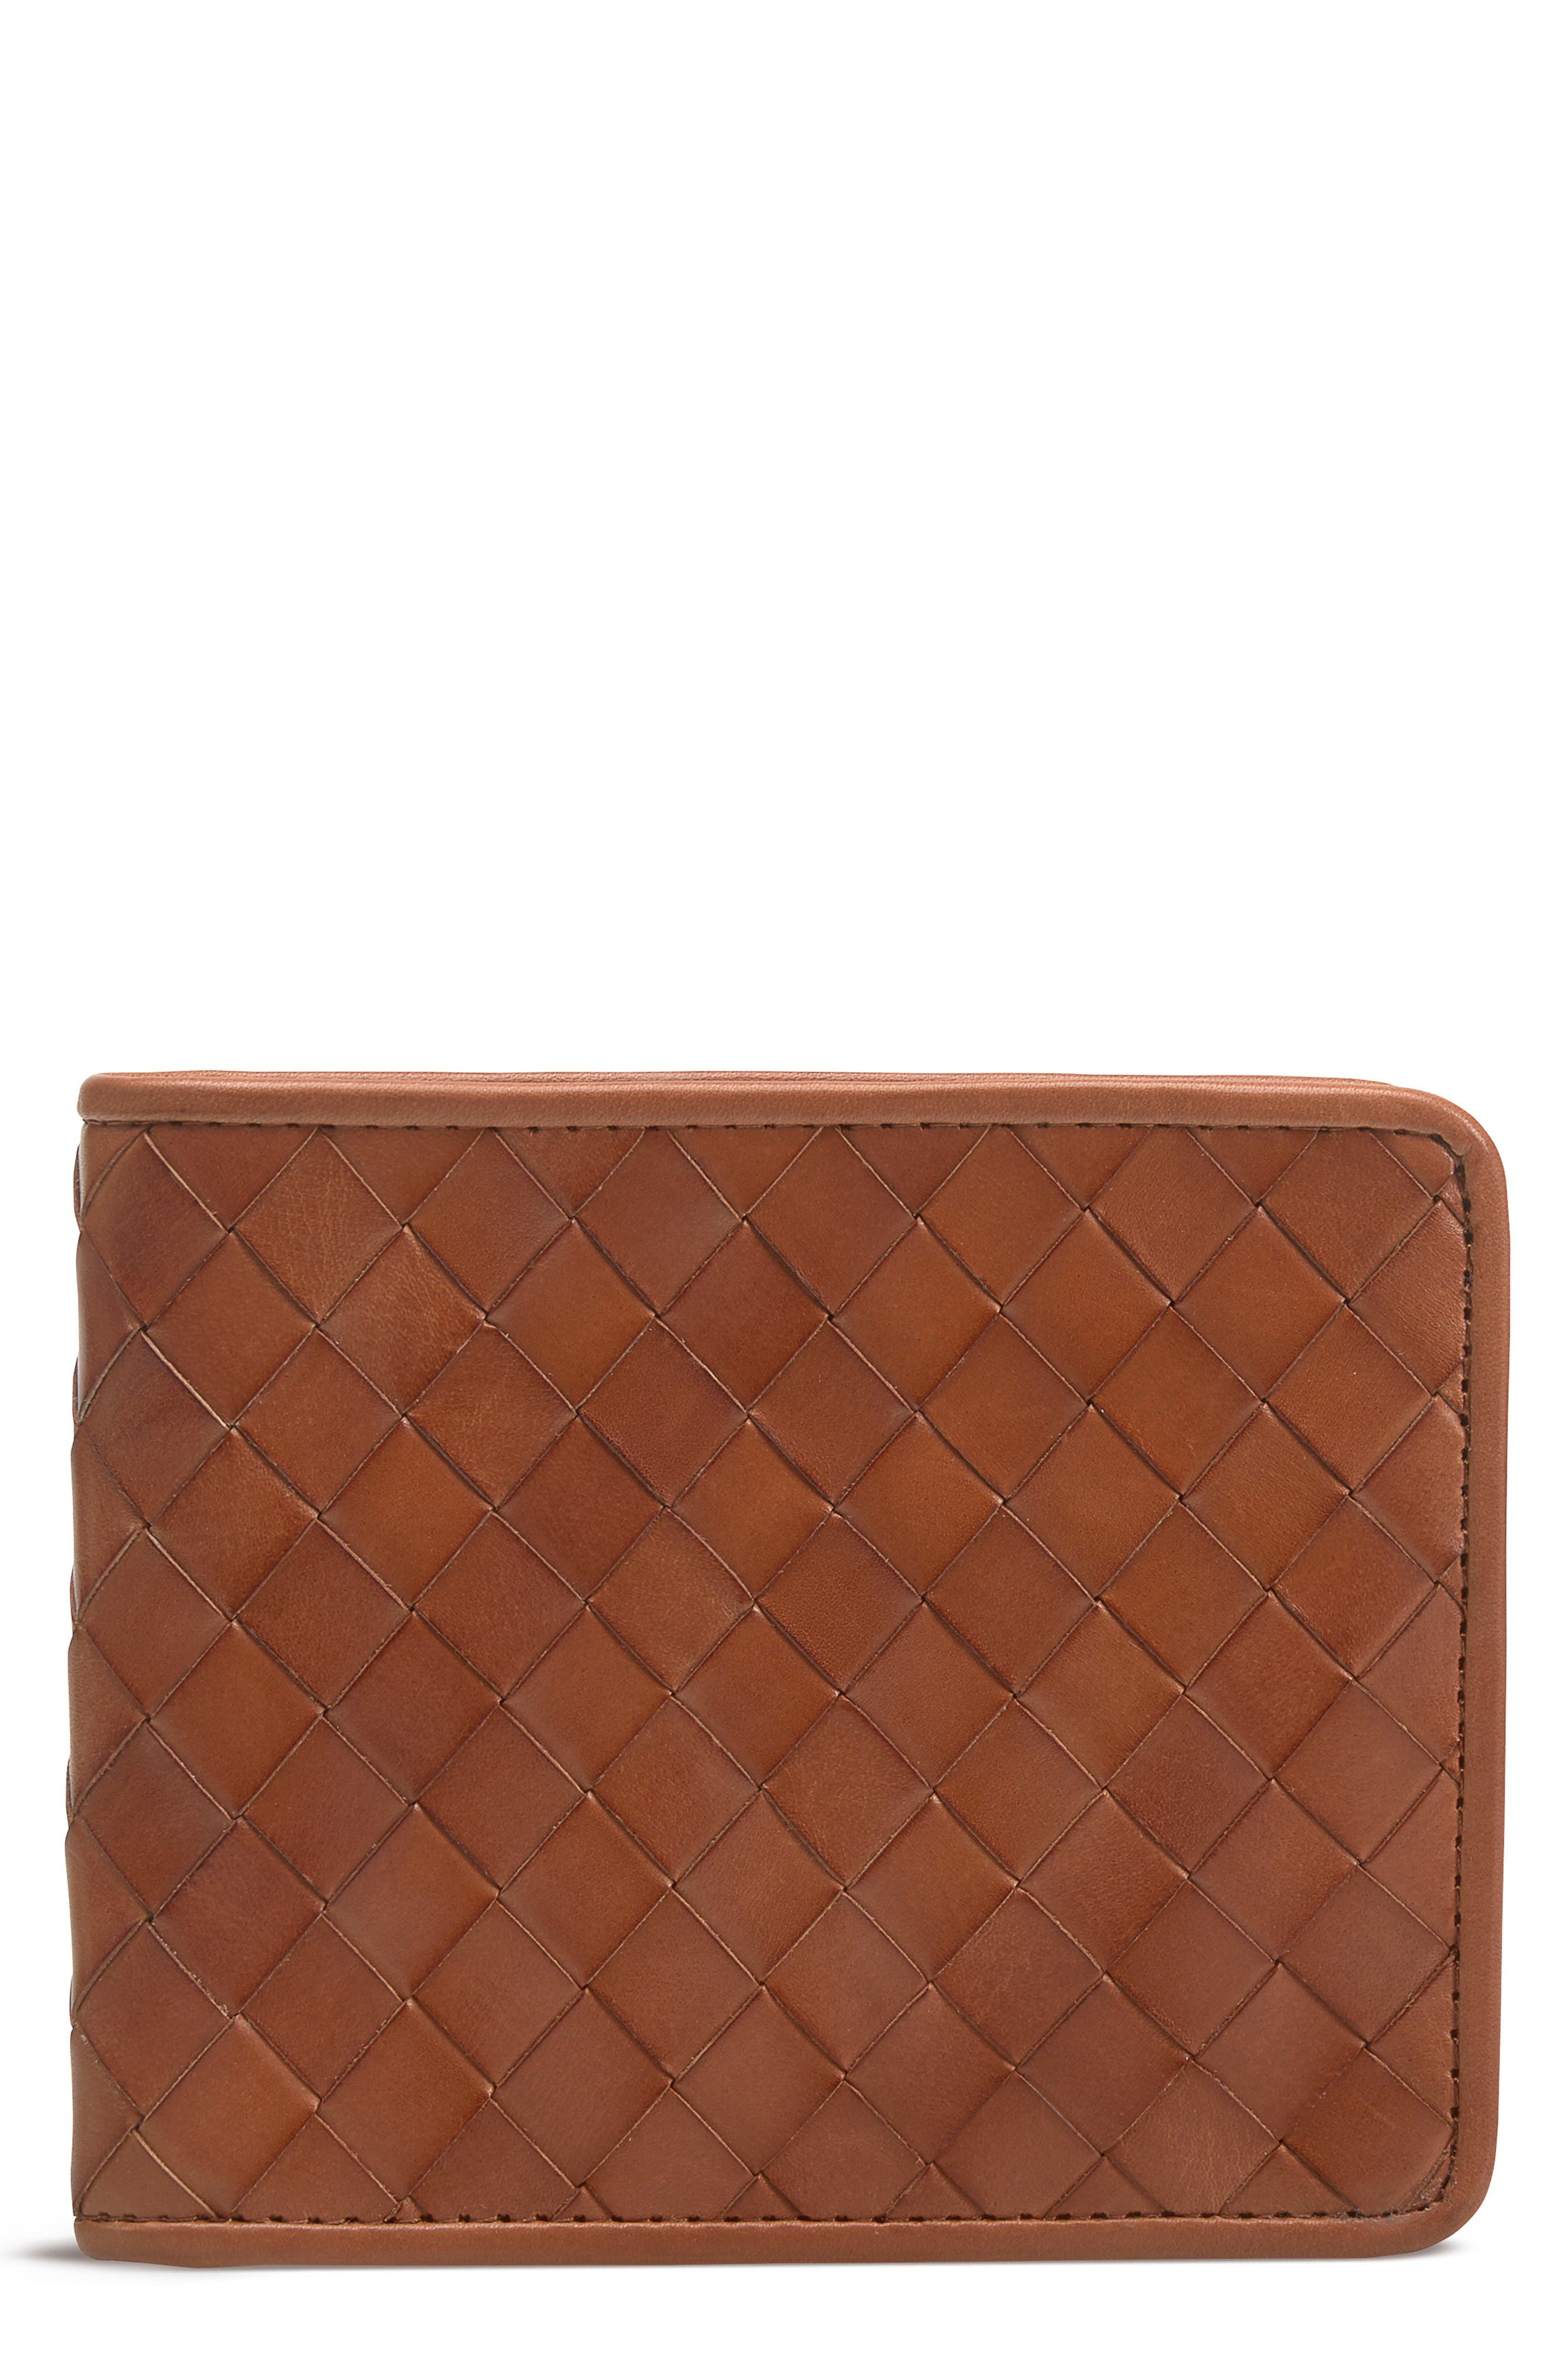 TRASK Woven Leather Wallet